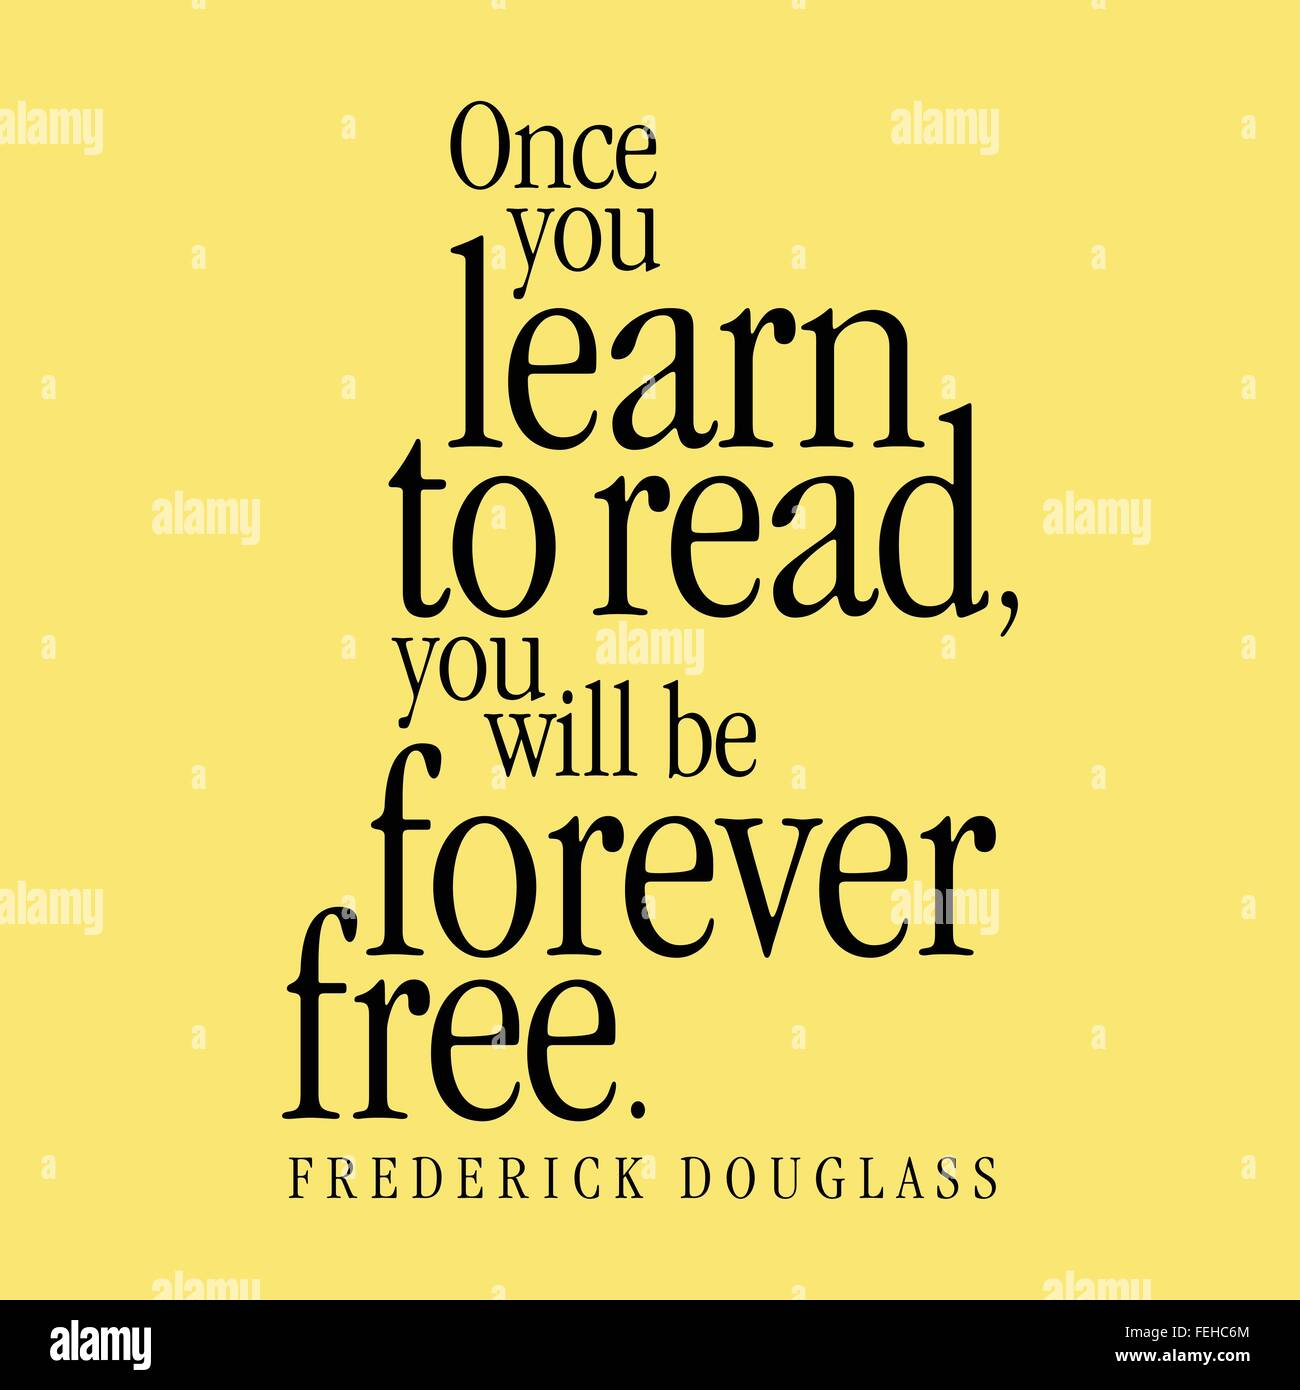 frederick douglass learning to read